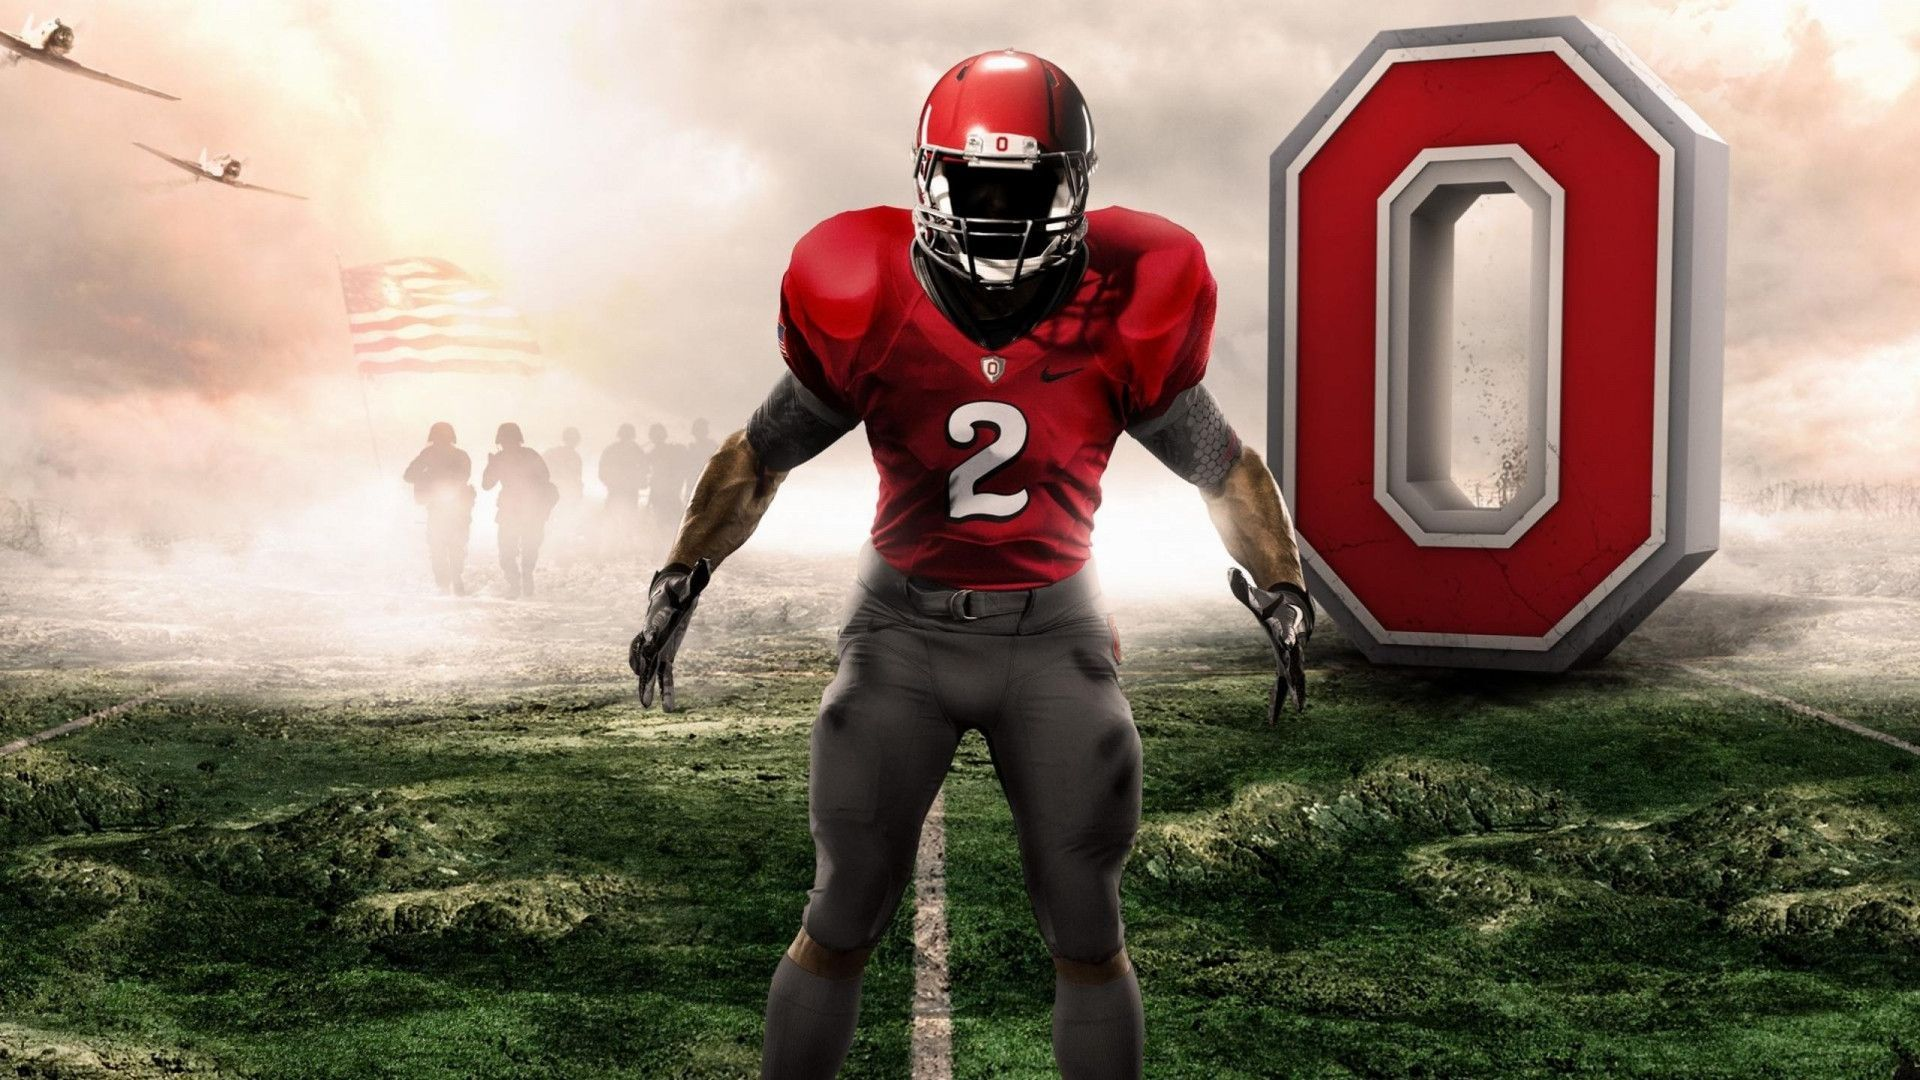 Free College Wallpapers College Football Background Hd